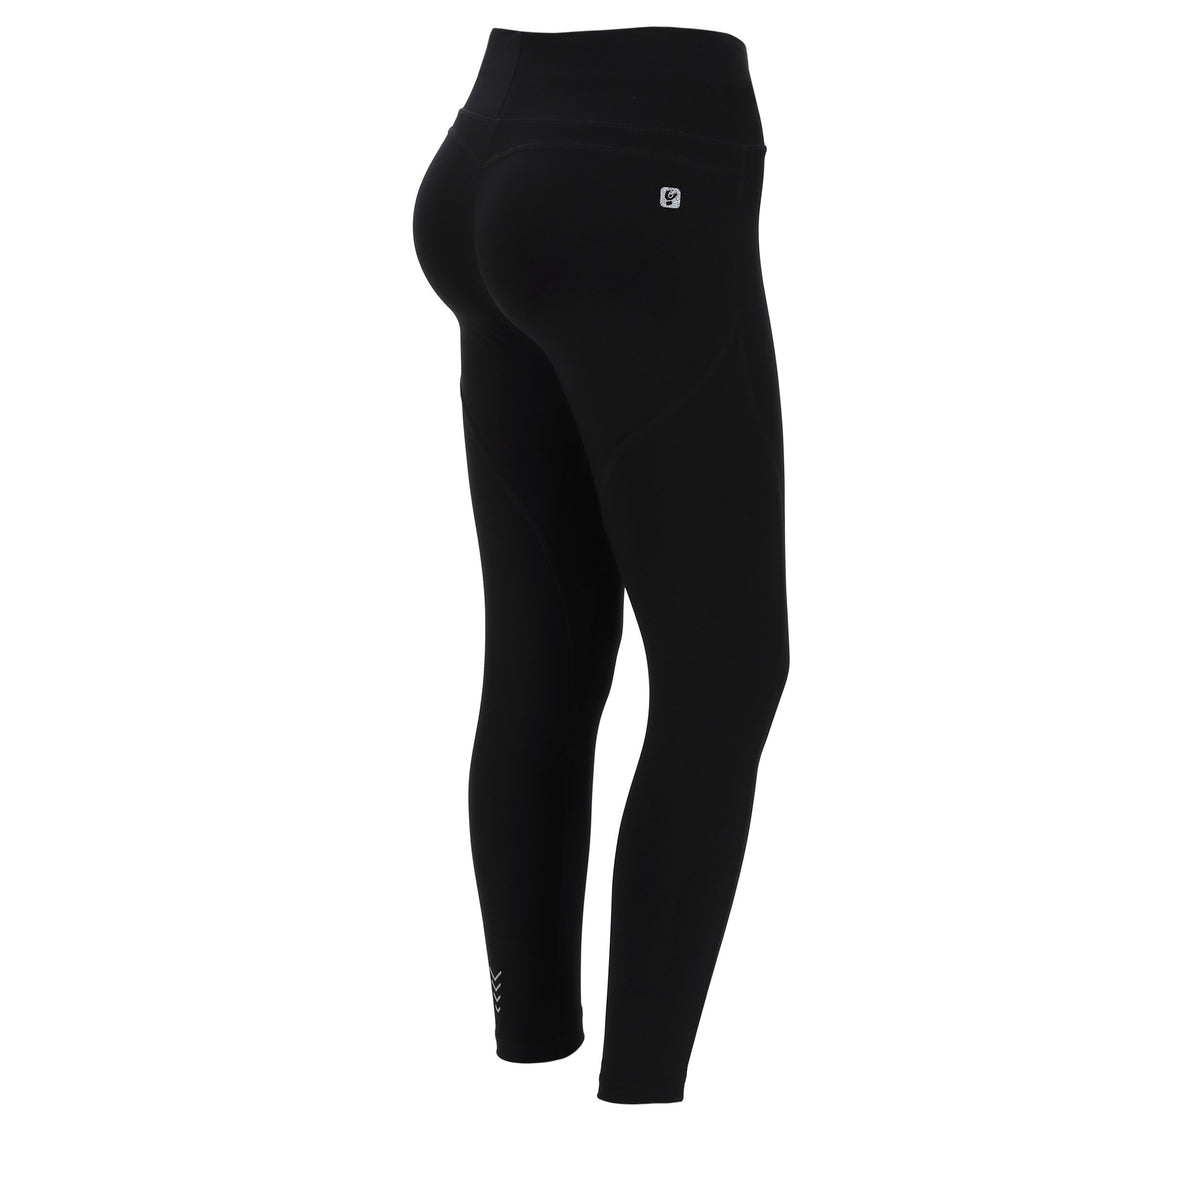 D.I.W.O.® PRO BLACK FITNESS LEGGINGS